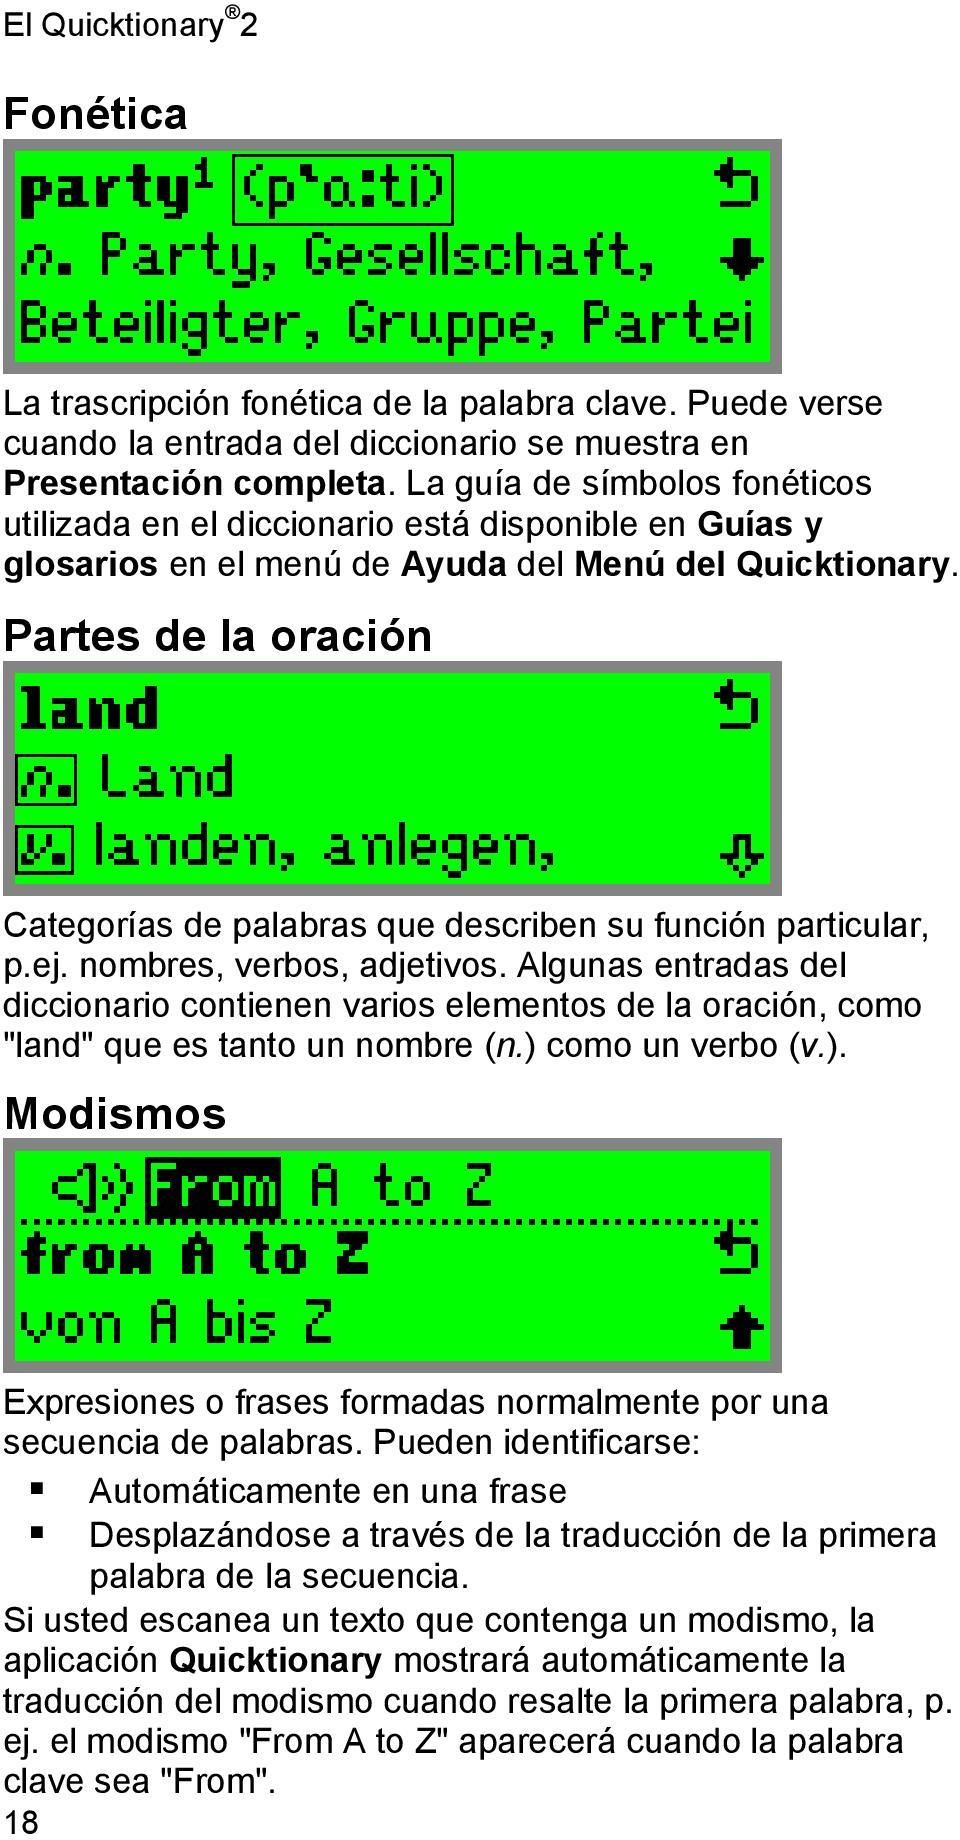 Quicktionary 2 Manual de usuario. Índice - PDF